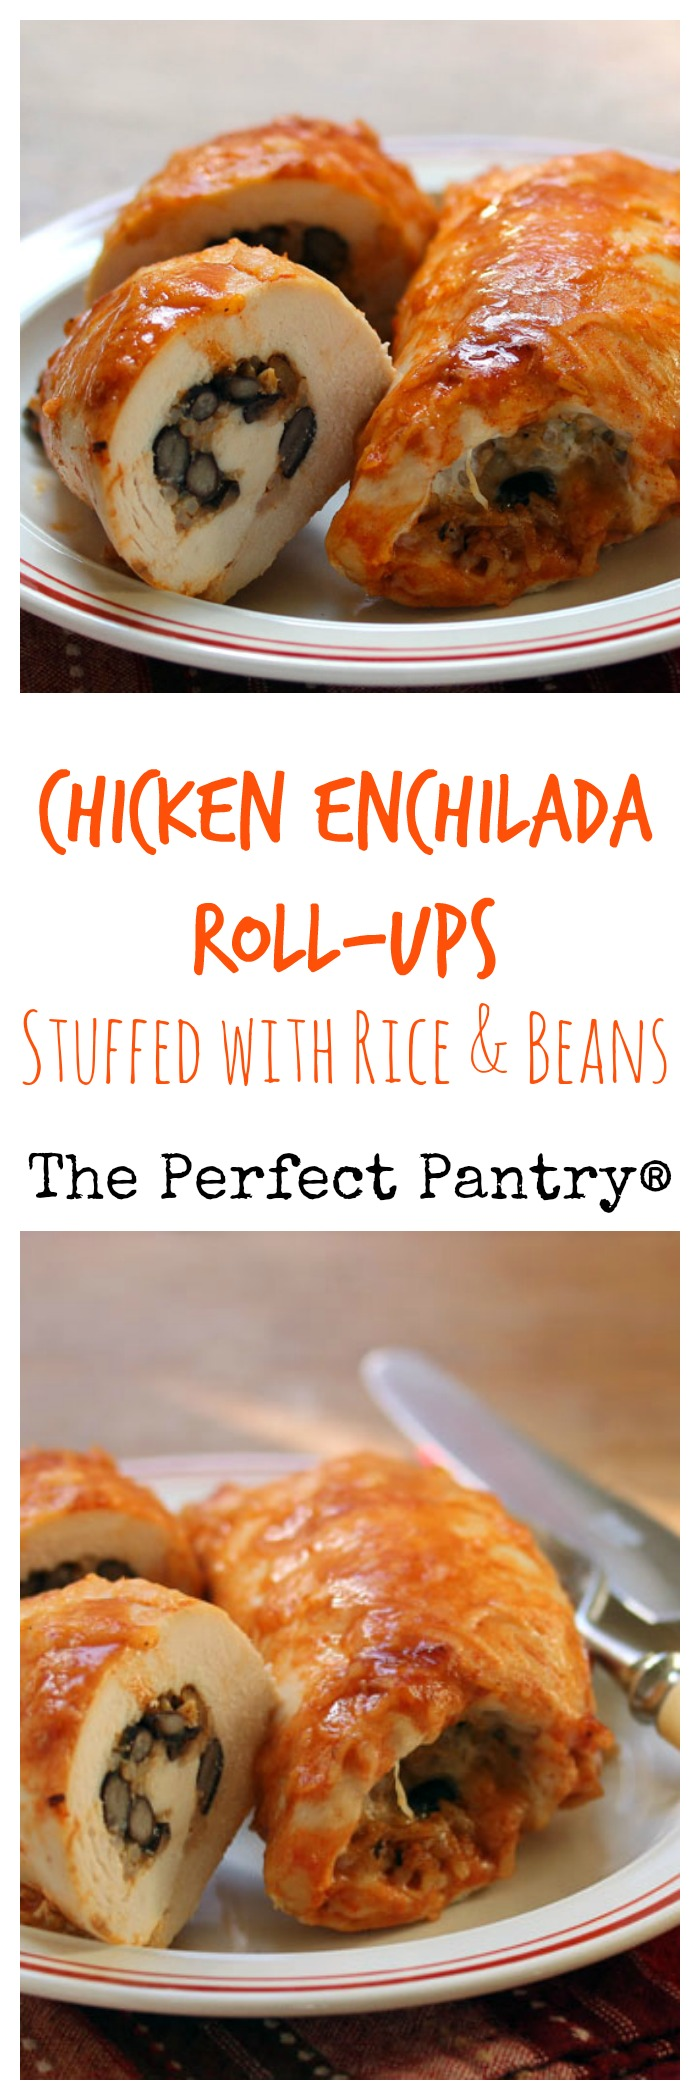 Easy, make-ahead-and-freeze chicken enchilada roll-ups. #glutenfree